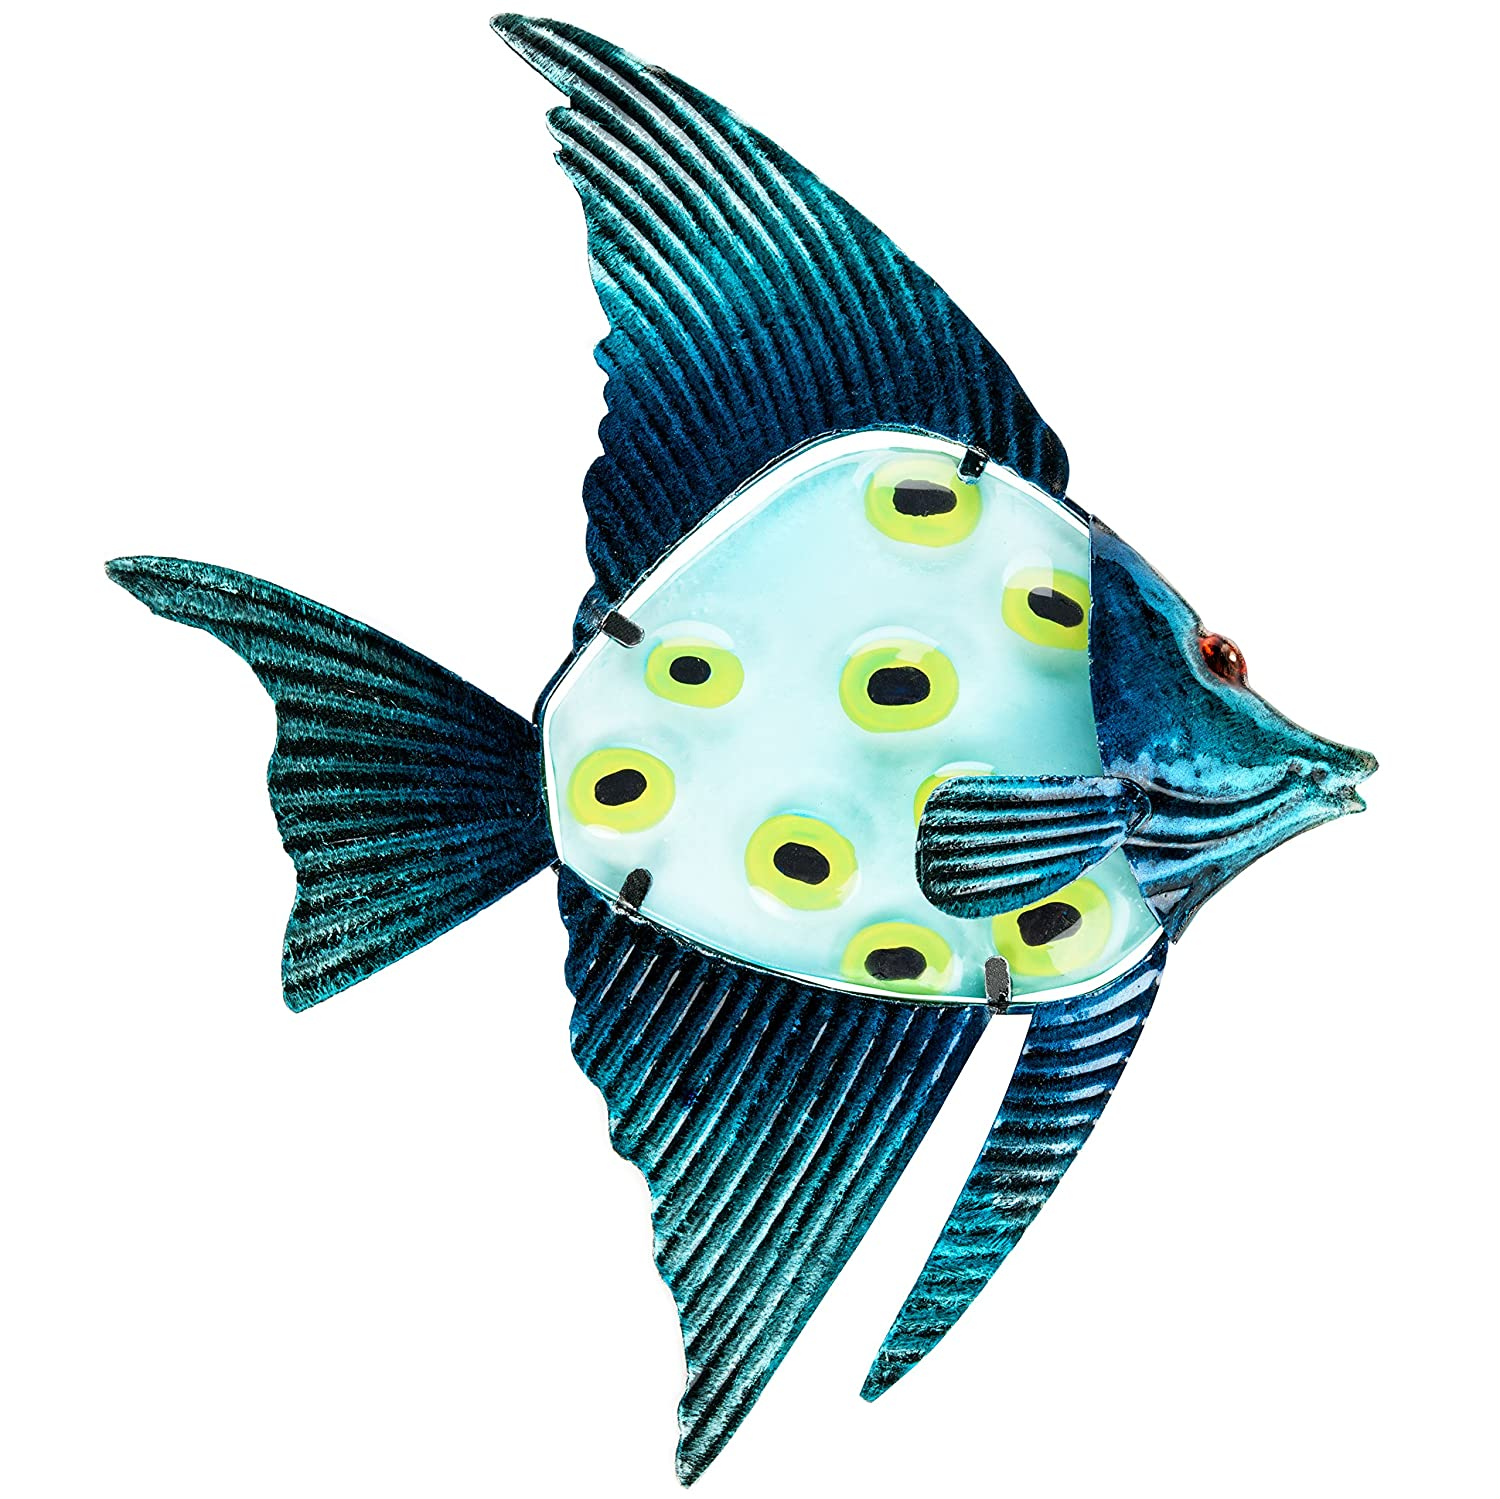 "Patio Eden - Metal and Glass Fish Wall Art - 12.5"" - Perfect Patio Decoration - Indoor Or Outdoor Hanging Beach Decor - Easy To Hang"